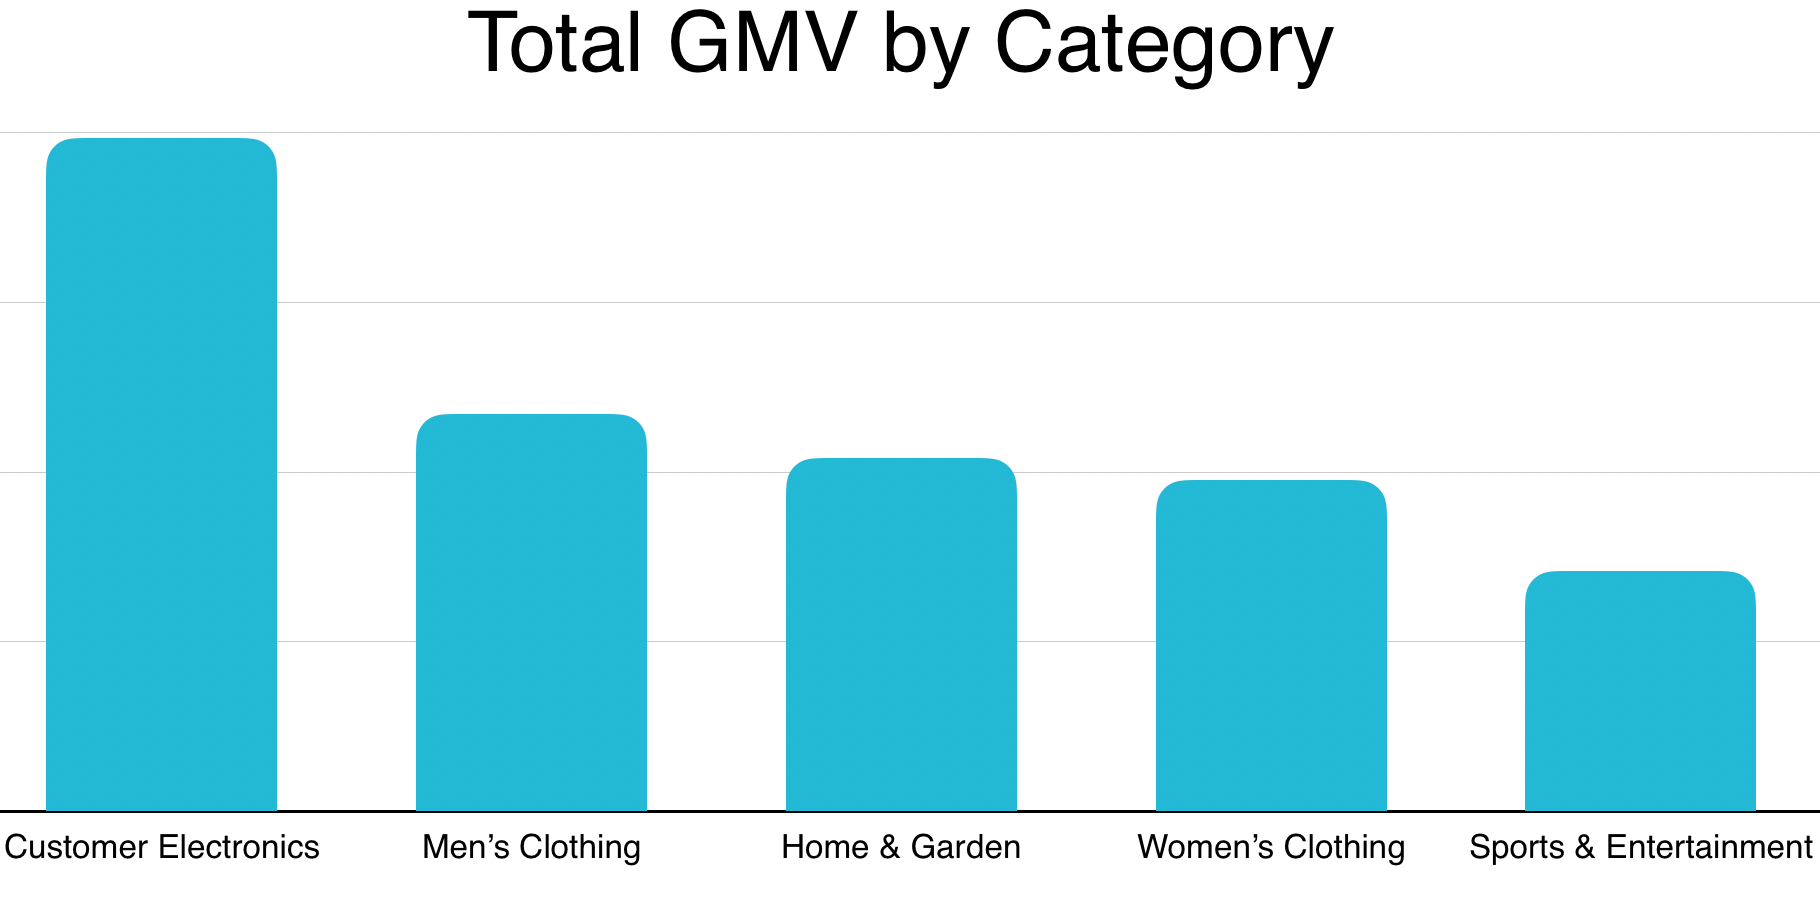 2019 Niche Italian Markets by GMV